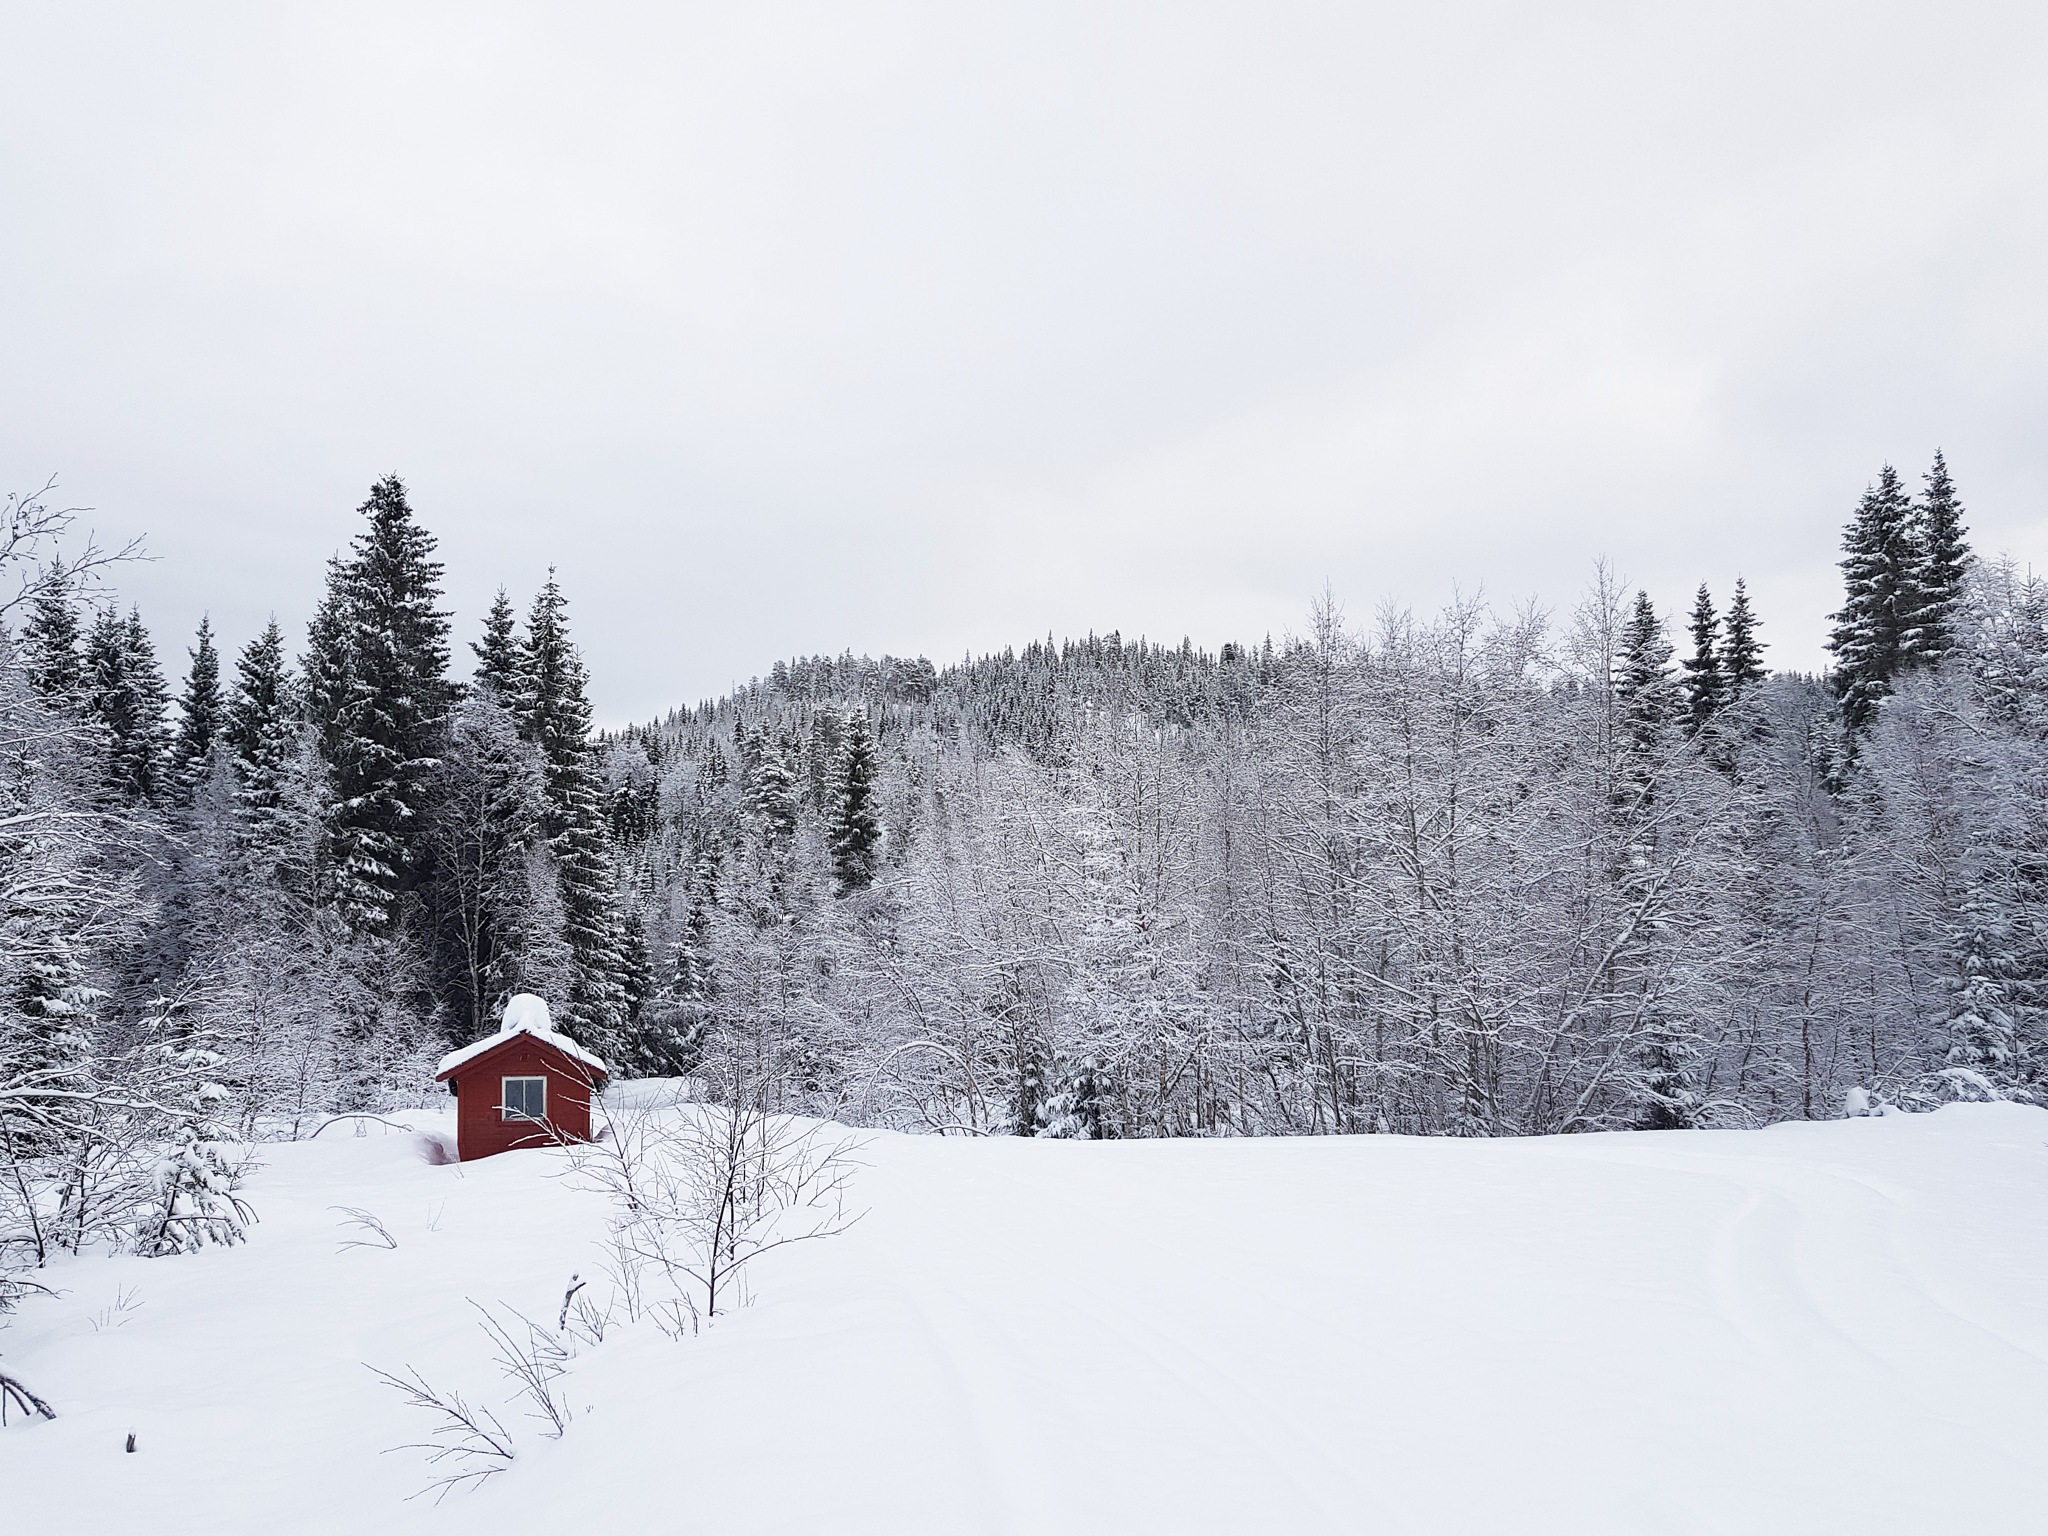 The small red cabin by Jan Arvid Solem